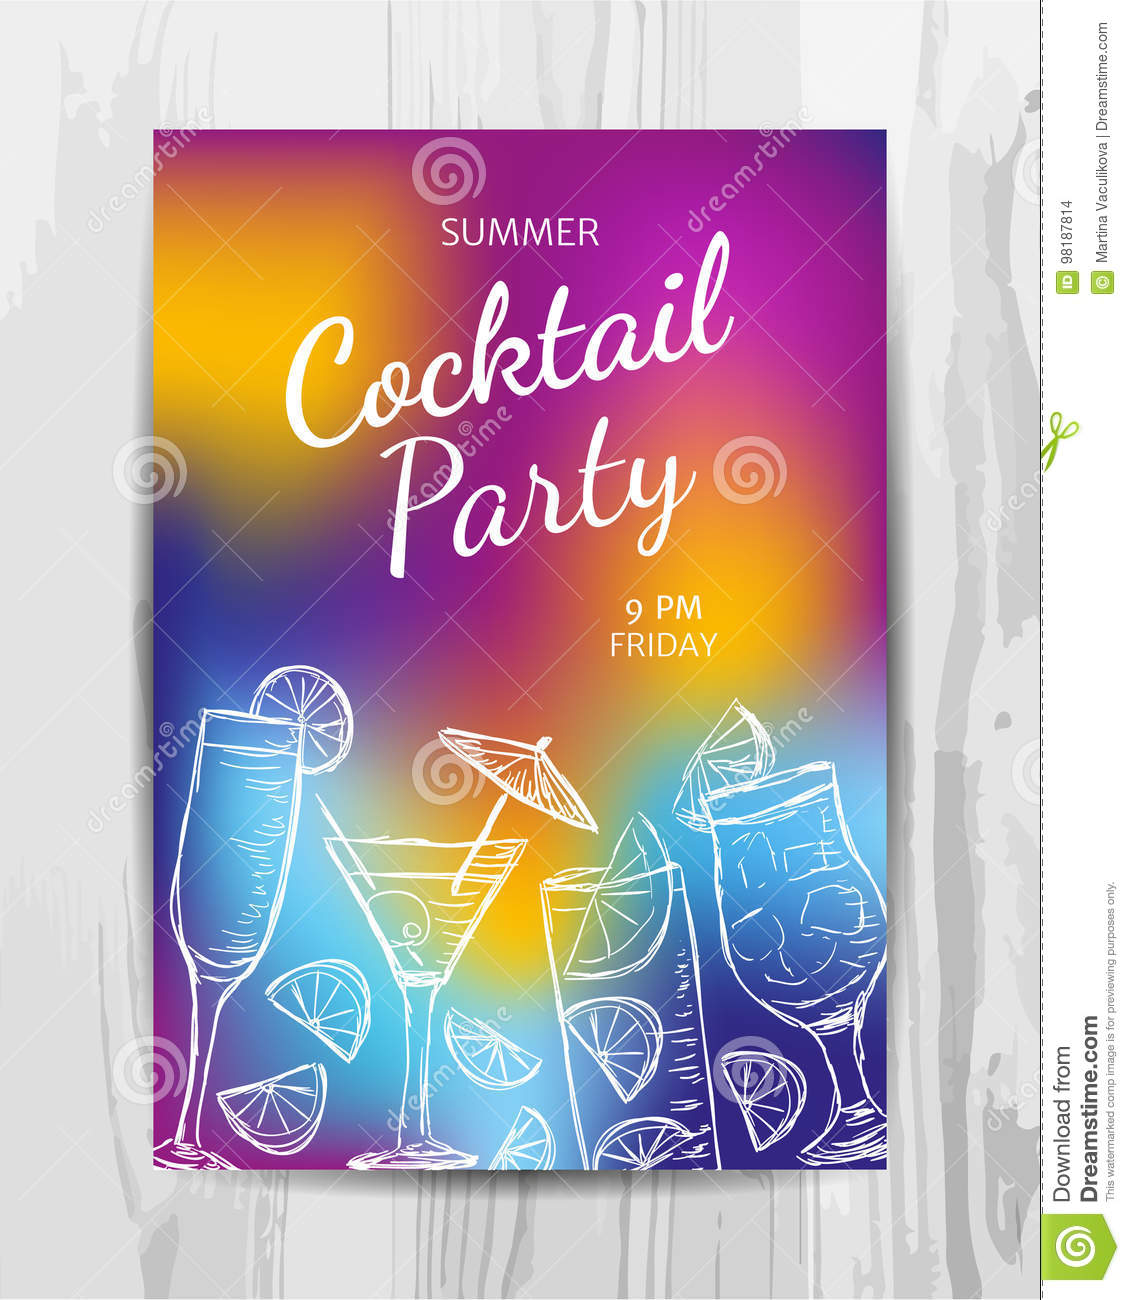 Birthday party invitation card cocktail party flyer stock vector download birthday party invitation card cocktail party flyer stock vector illustration of anniversary stopboris Gallery